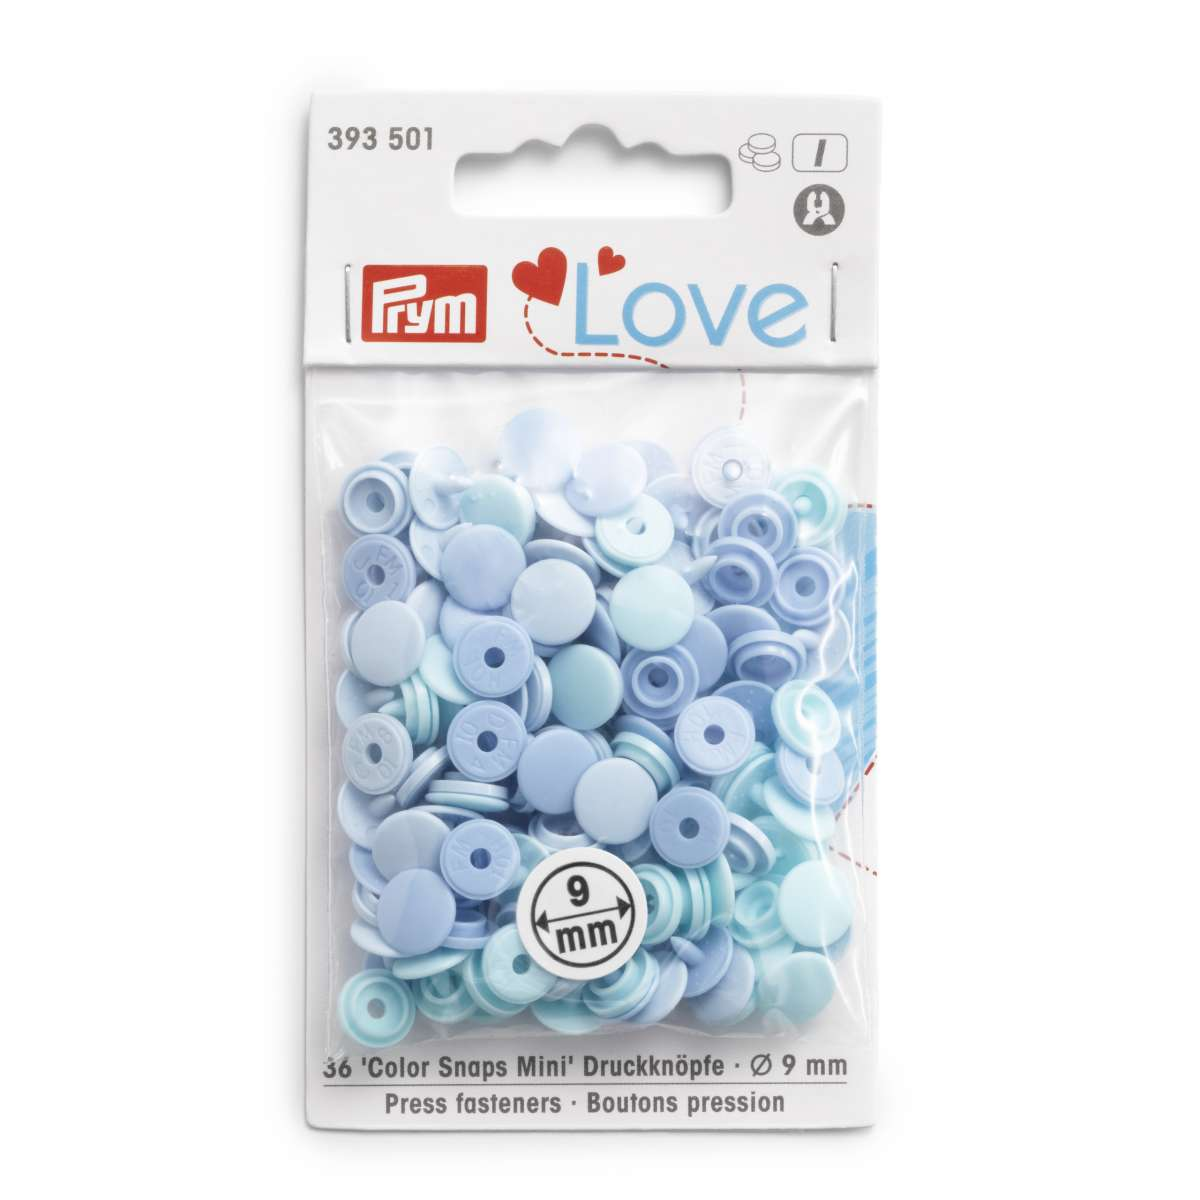 Prym Love Press fasteners Colour Snaps Mini, 9 mm, in shades of light blue